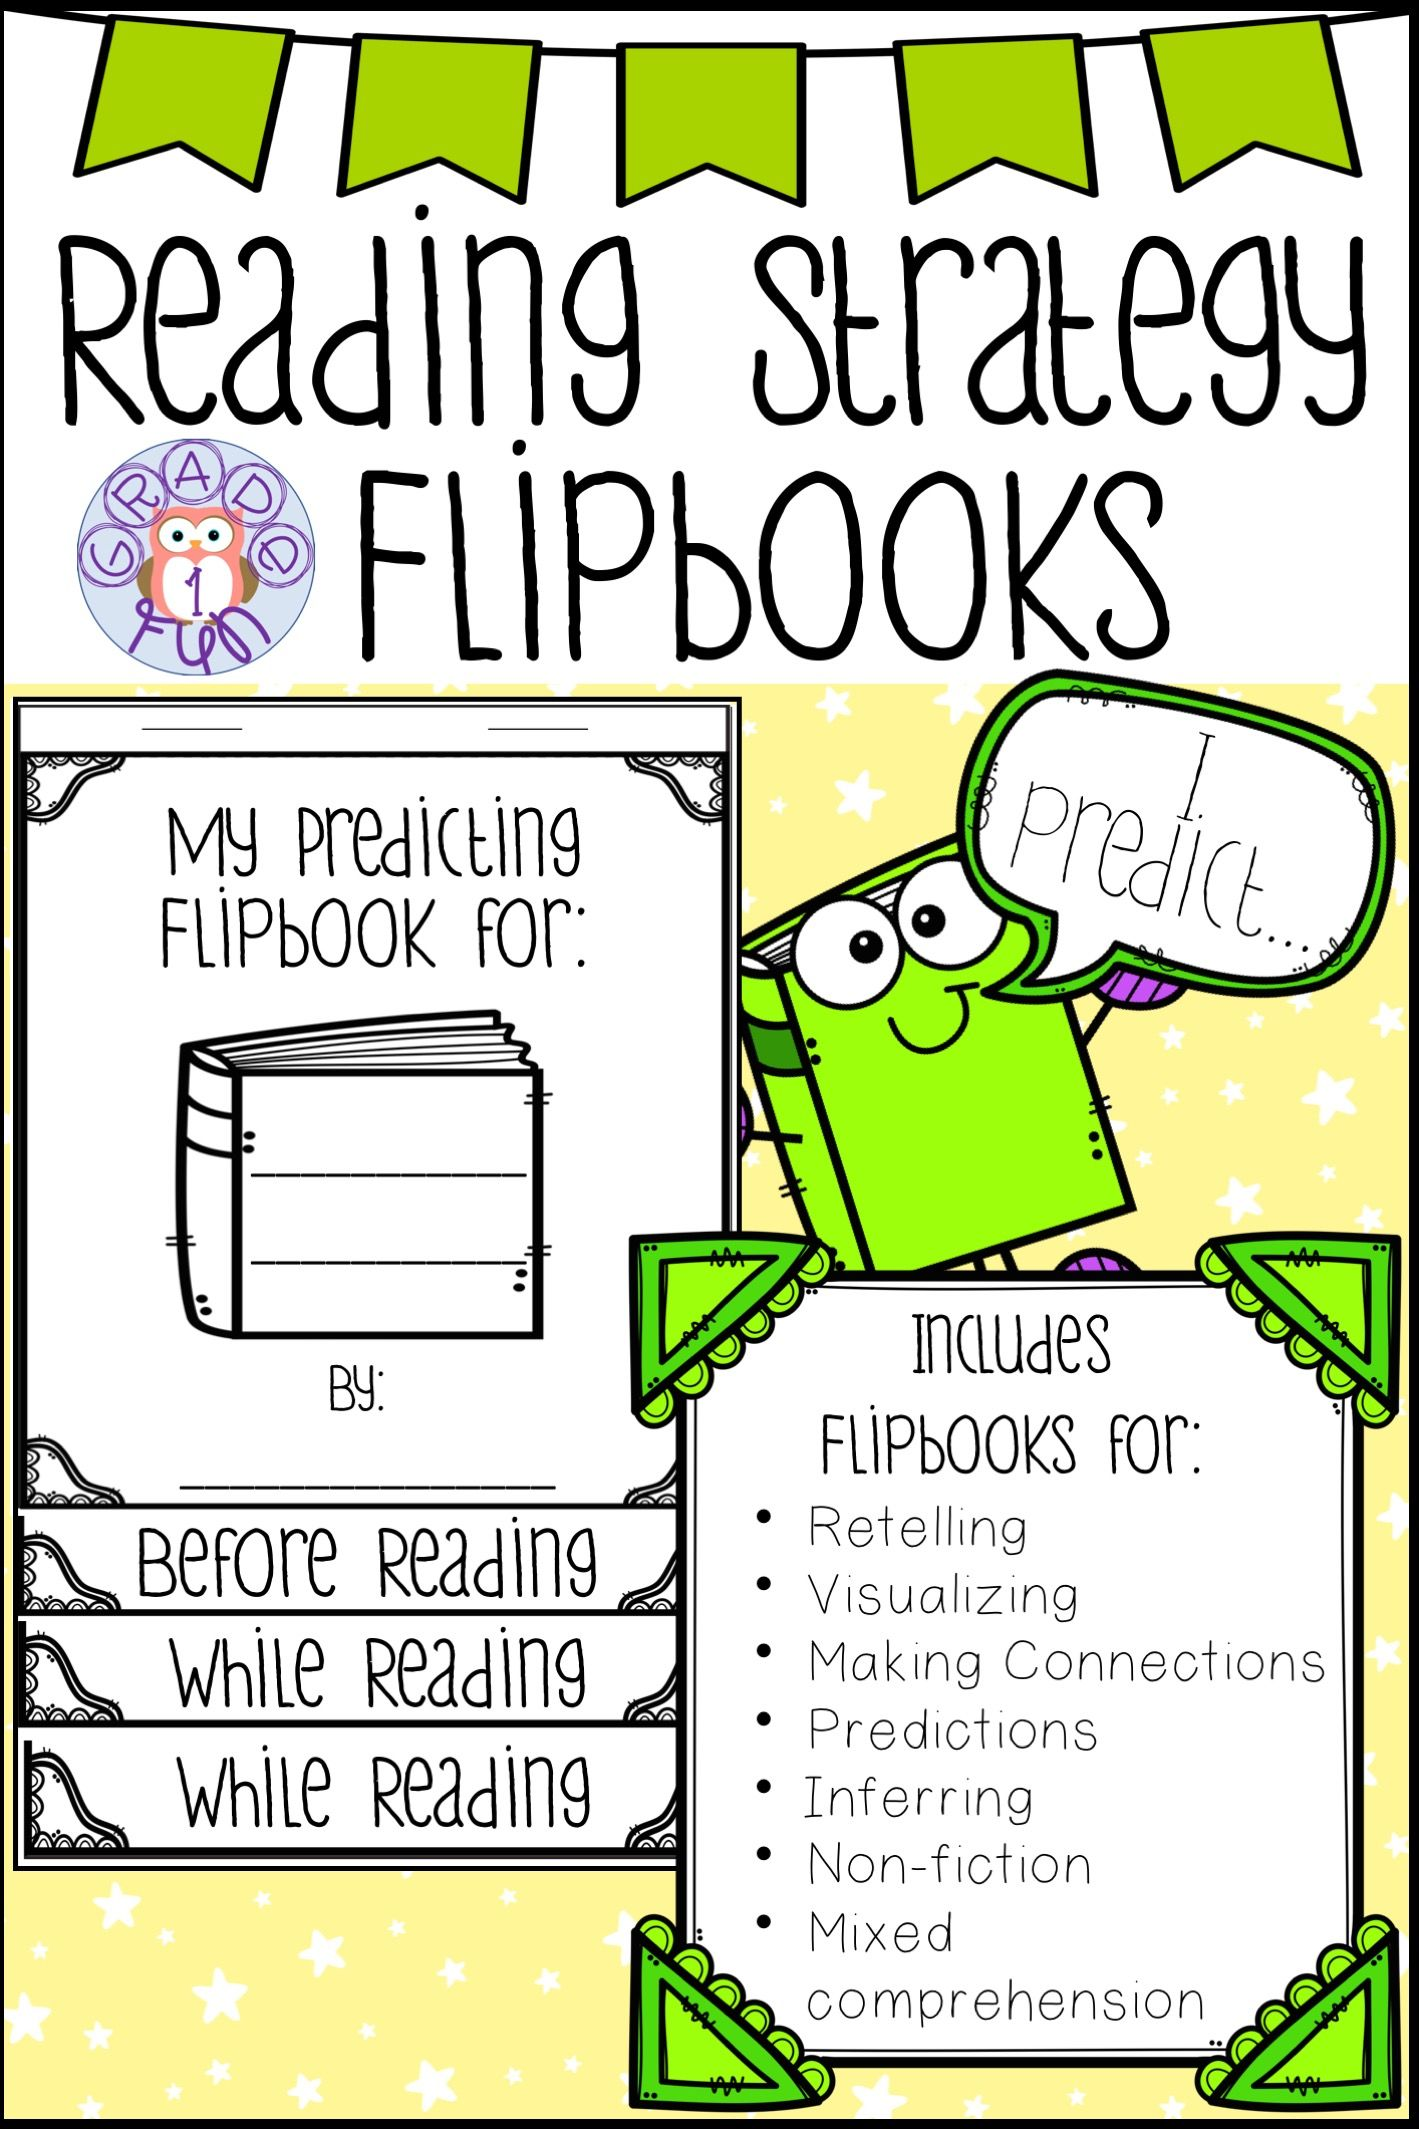 - Reading Strategy Flipbooks (With Images) Reading Strategies